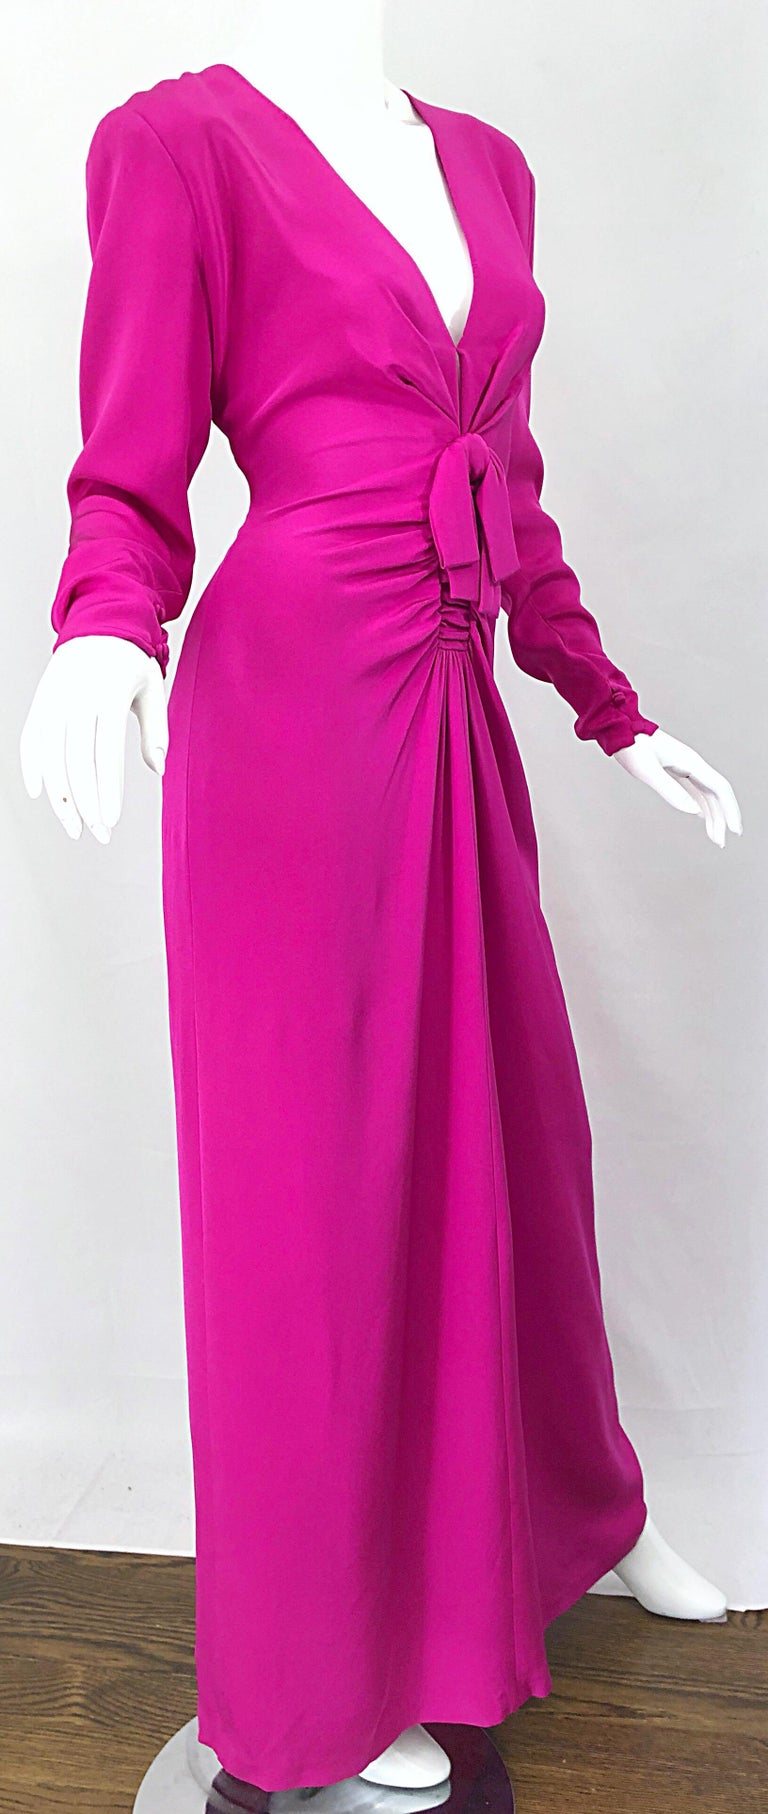 Vintage Bill Blass Size 10 Hot Pink Silk Jersey Cut - Out 1980s 80s Evening Gown For Sale 9